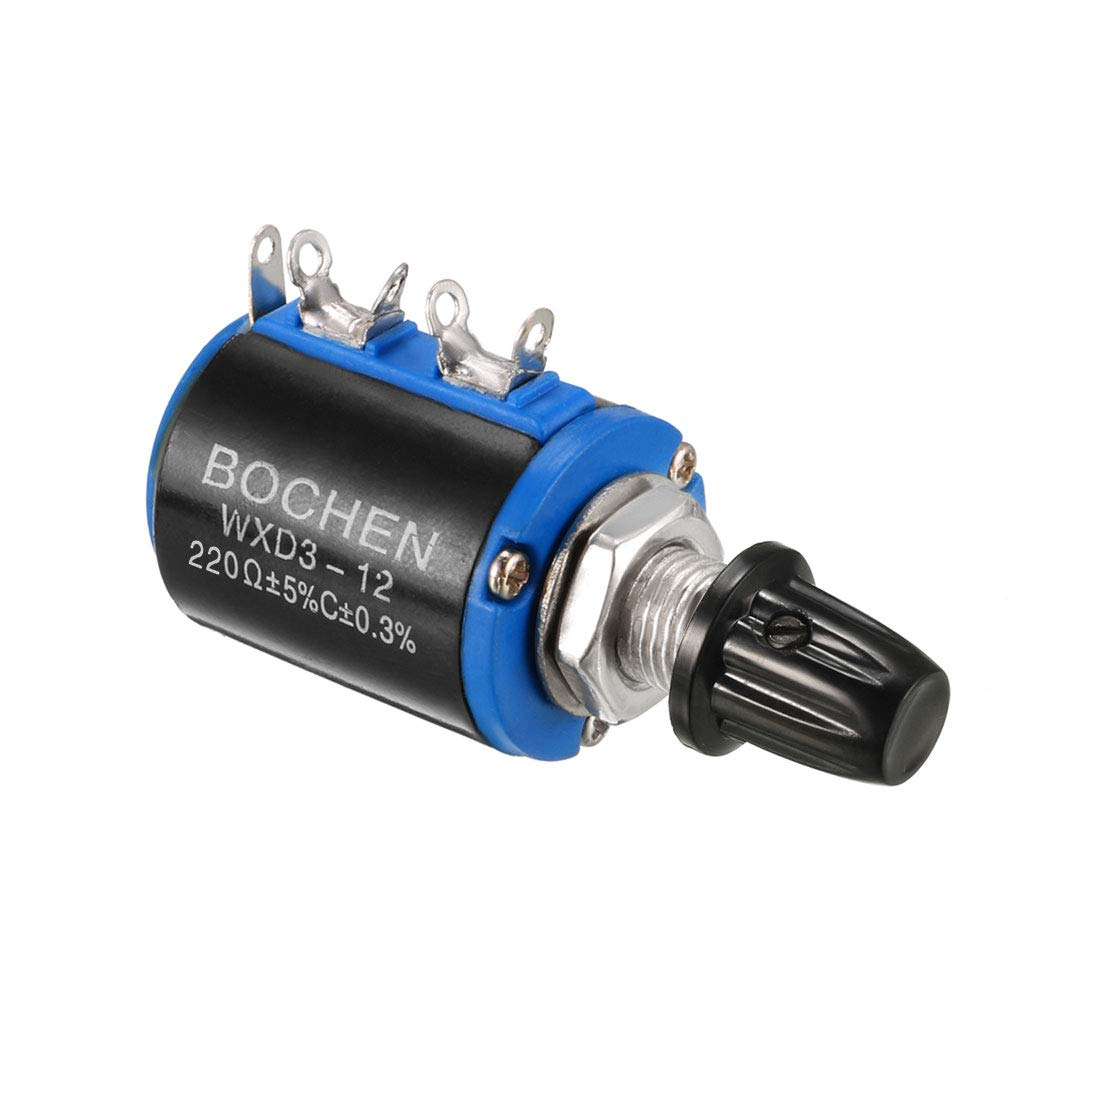 sourcing map 2.2K Ohm//1W Potentiometer Pots Adjustable Resistors Wire Wound Multi Turn Precision with knobs 1pcs